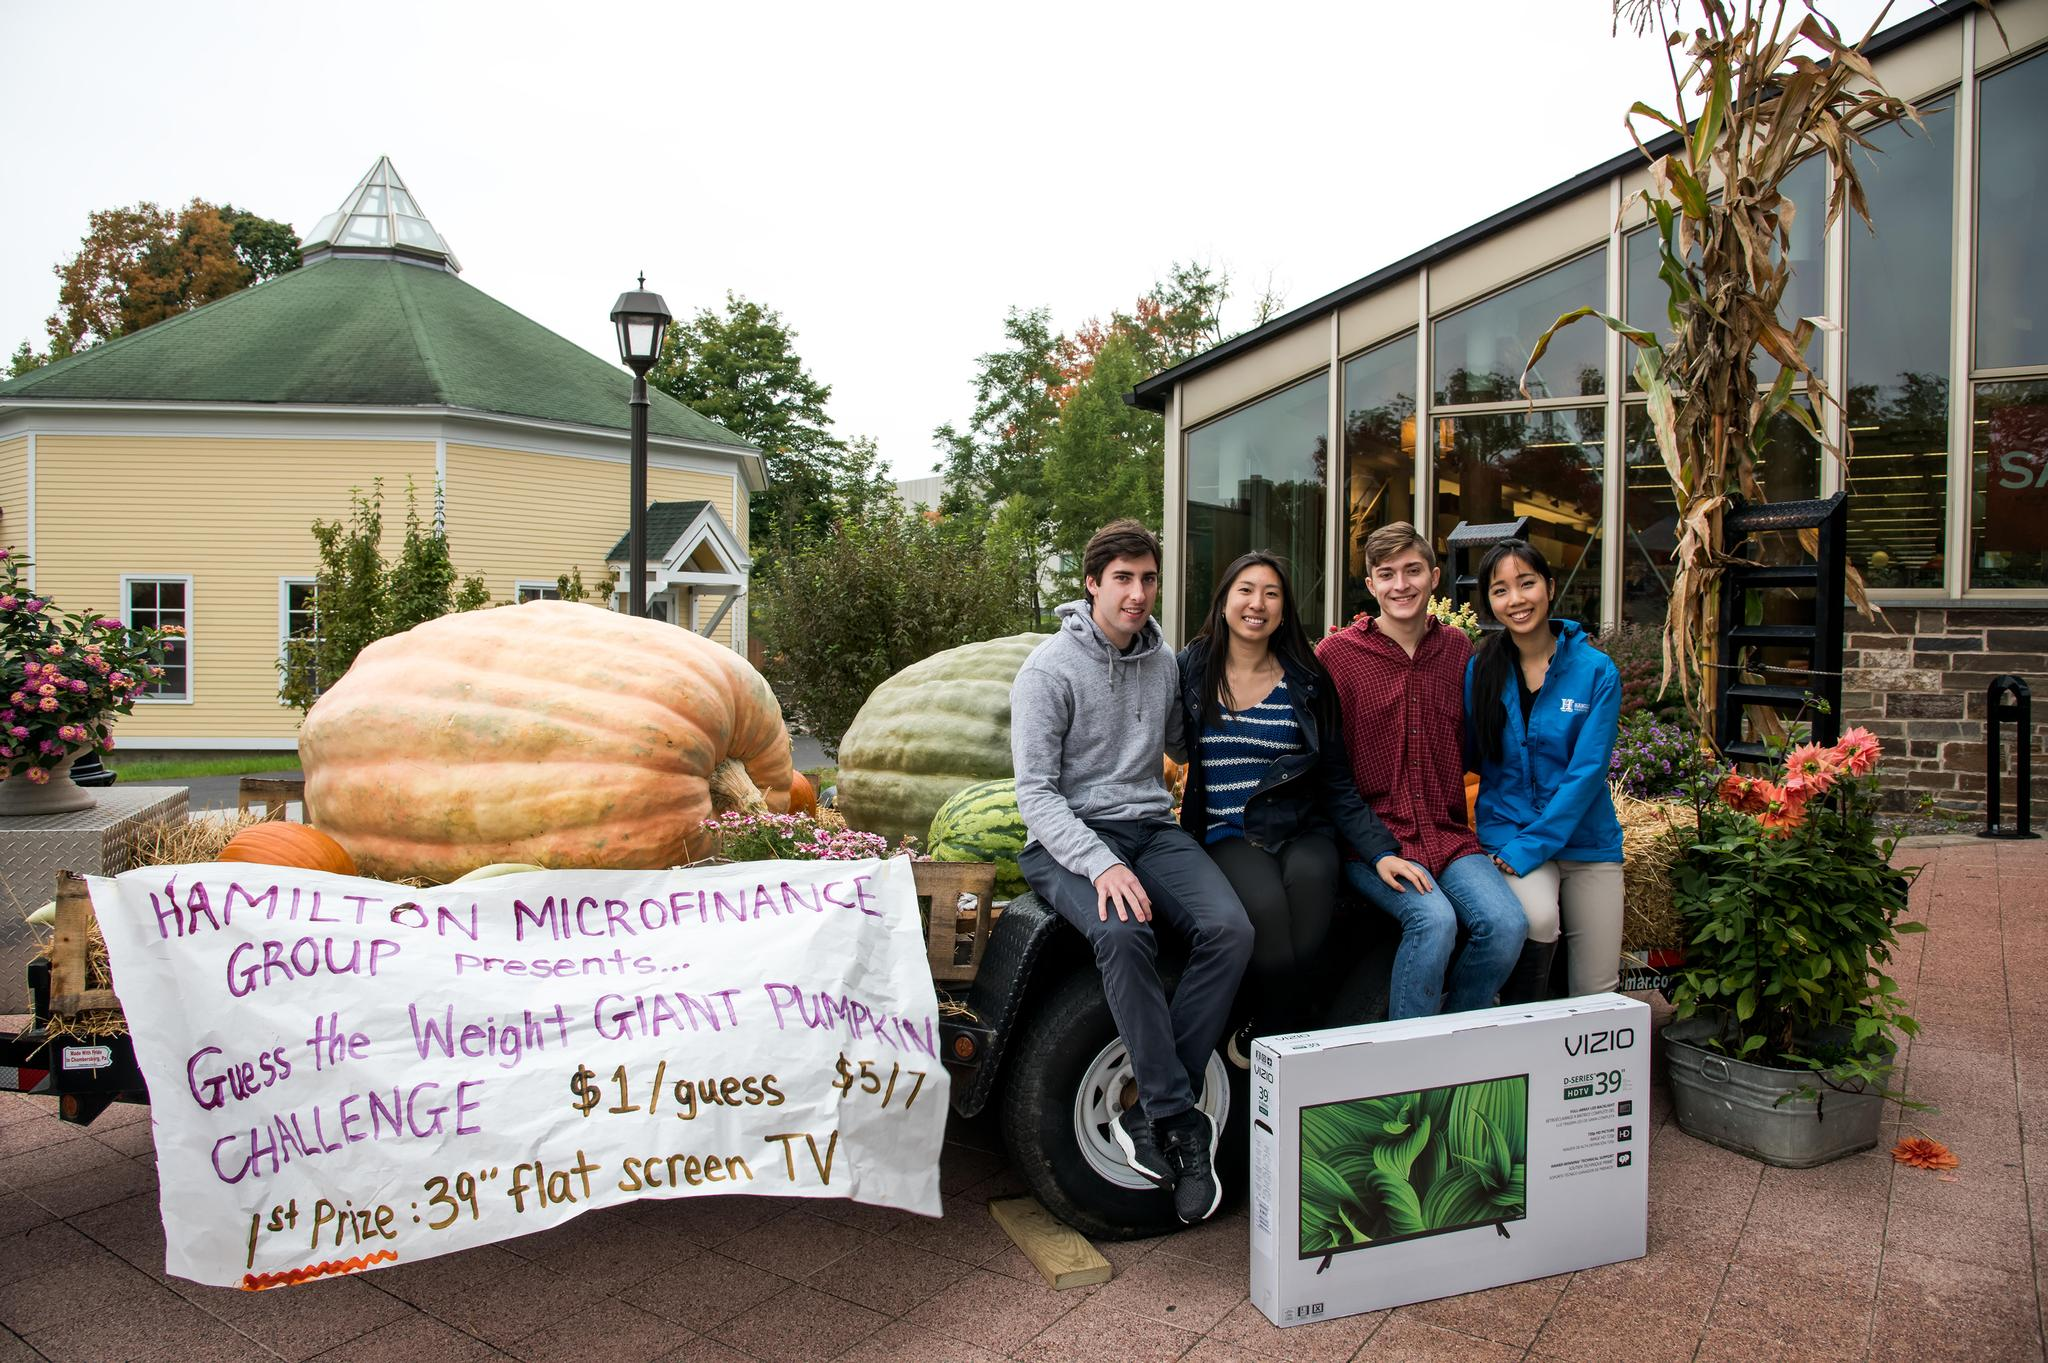 Microfinance Giant Pumpkin Fundraiser